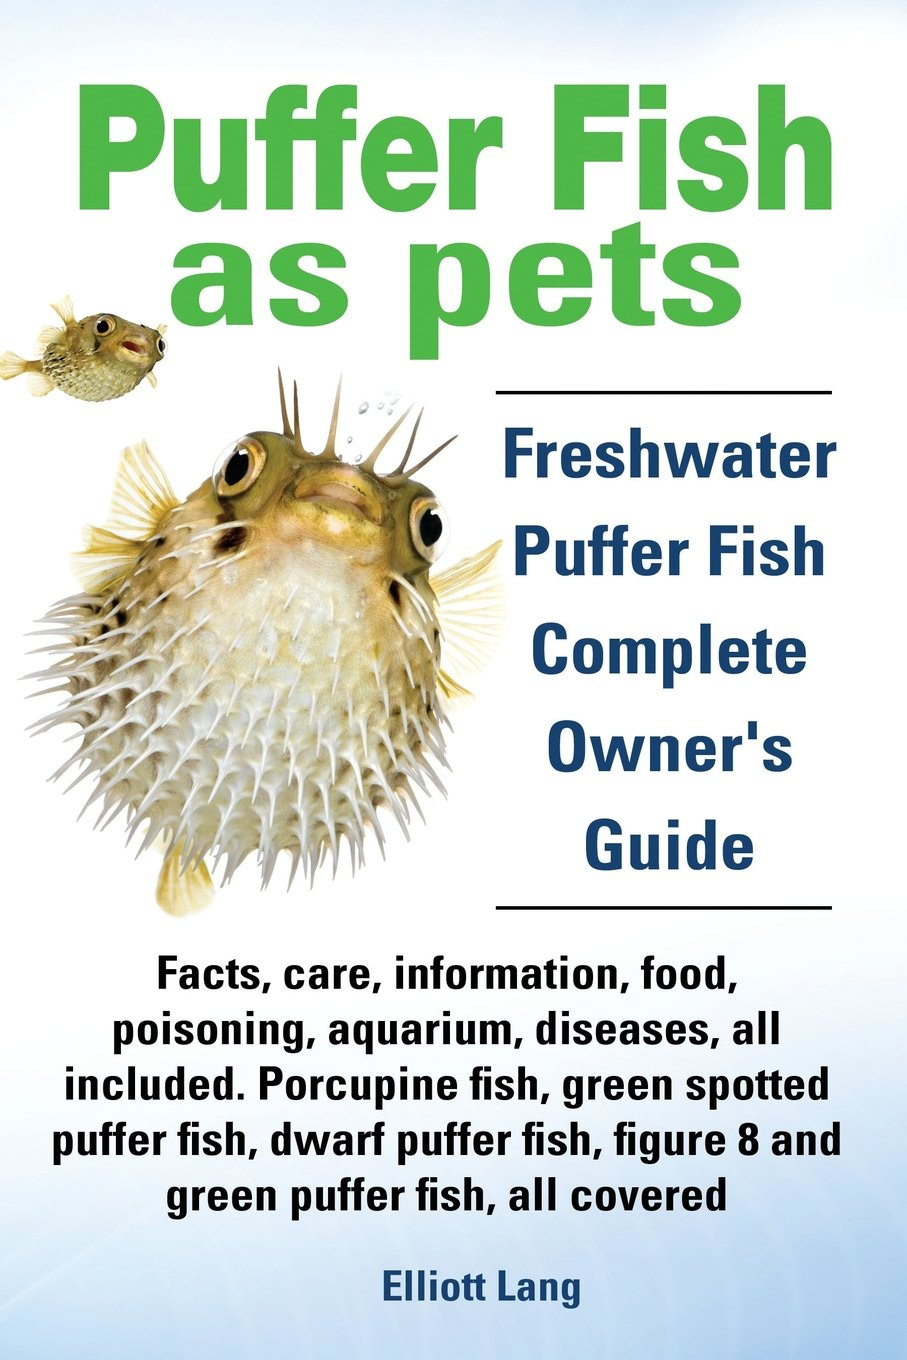 Freshwater aquarium puffer fish questions - Puffer Fish As Pets Freshwater Puffer Fish Facts Care Information Food Poisoning Aquarium Diseases All Included The Must Have Guide For All P